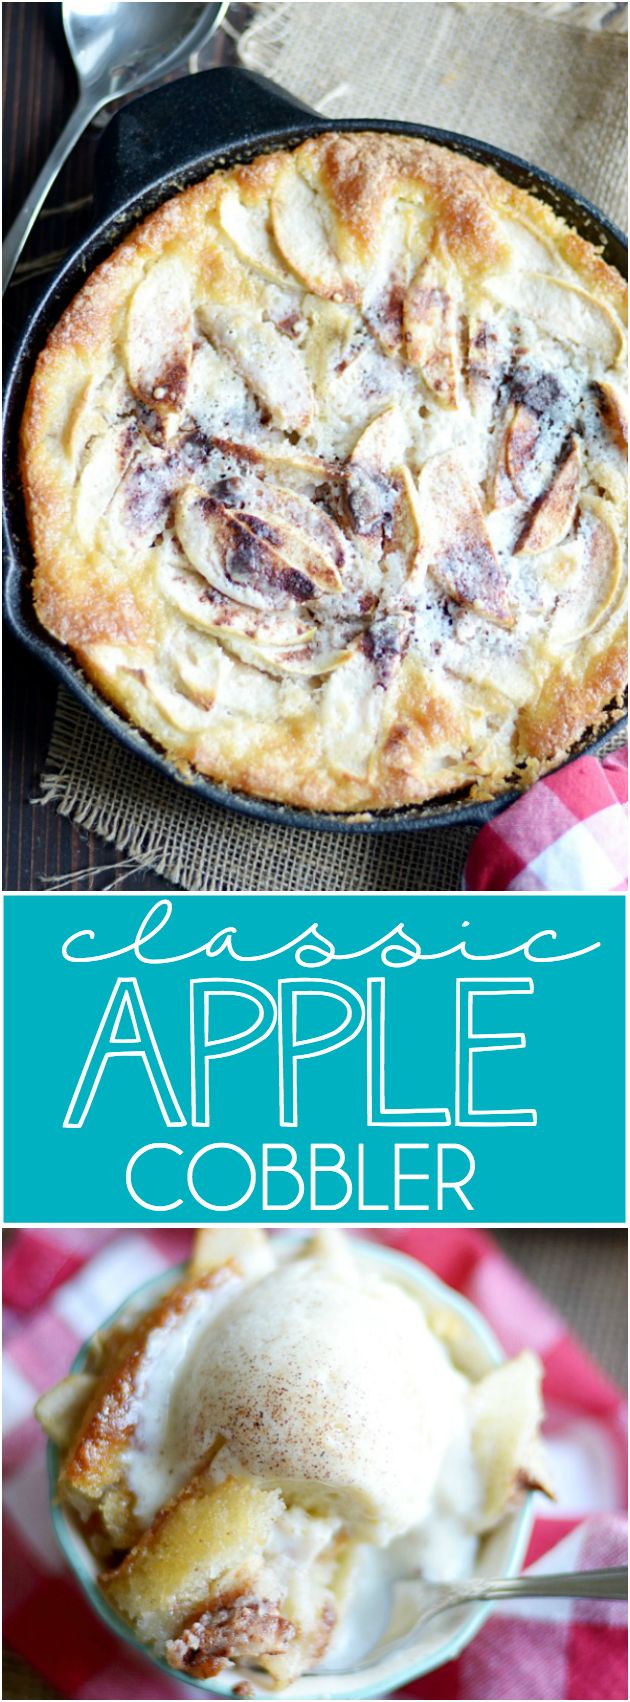 You won't be able to get enough of this classic cinnamon apple cobbler. This is a recipe to hold on to!